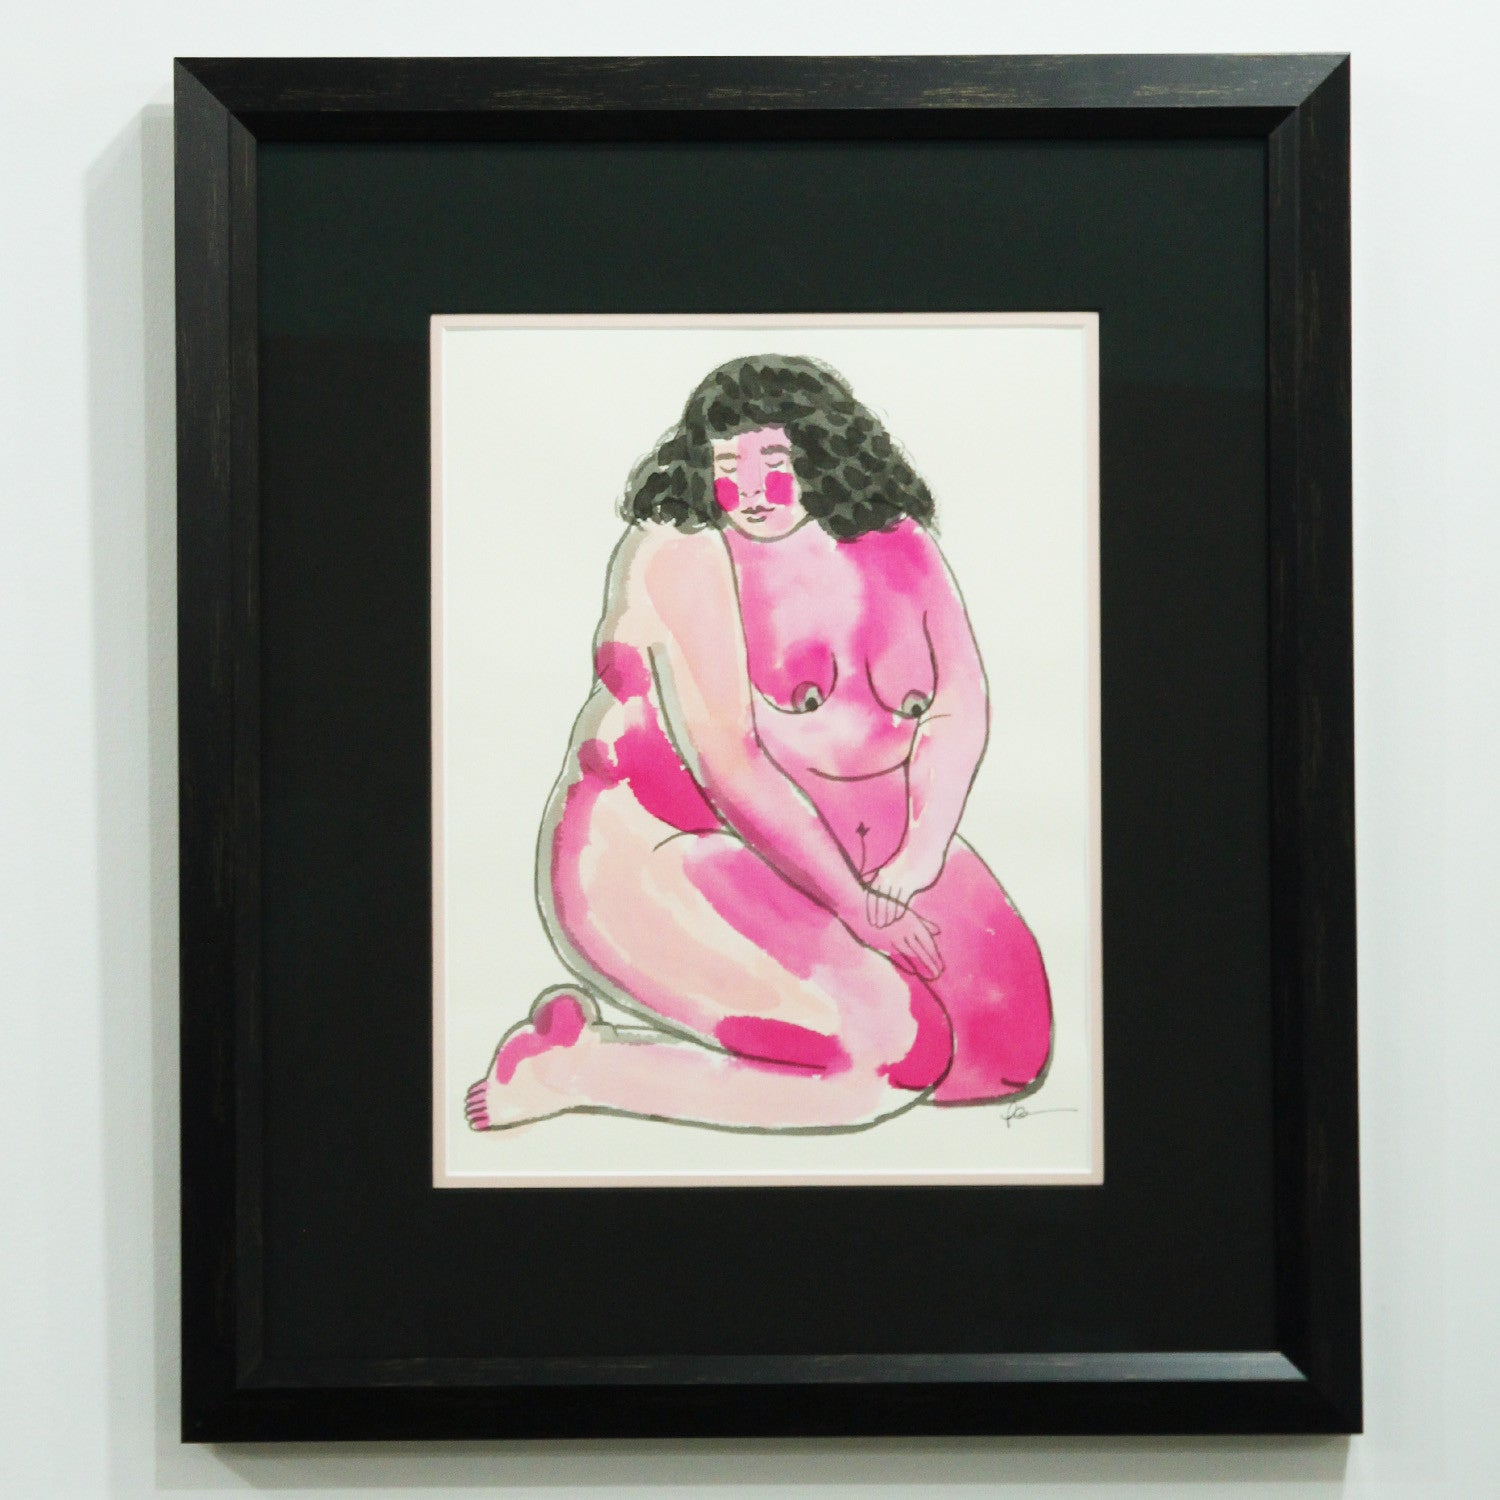 Pink and Soft - Original Watercolor | Frances Cannon | Frances Cannon at Sustain - Gallery and Shop - Chicago, IL